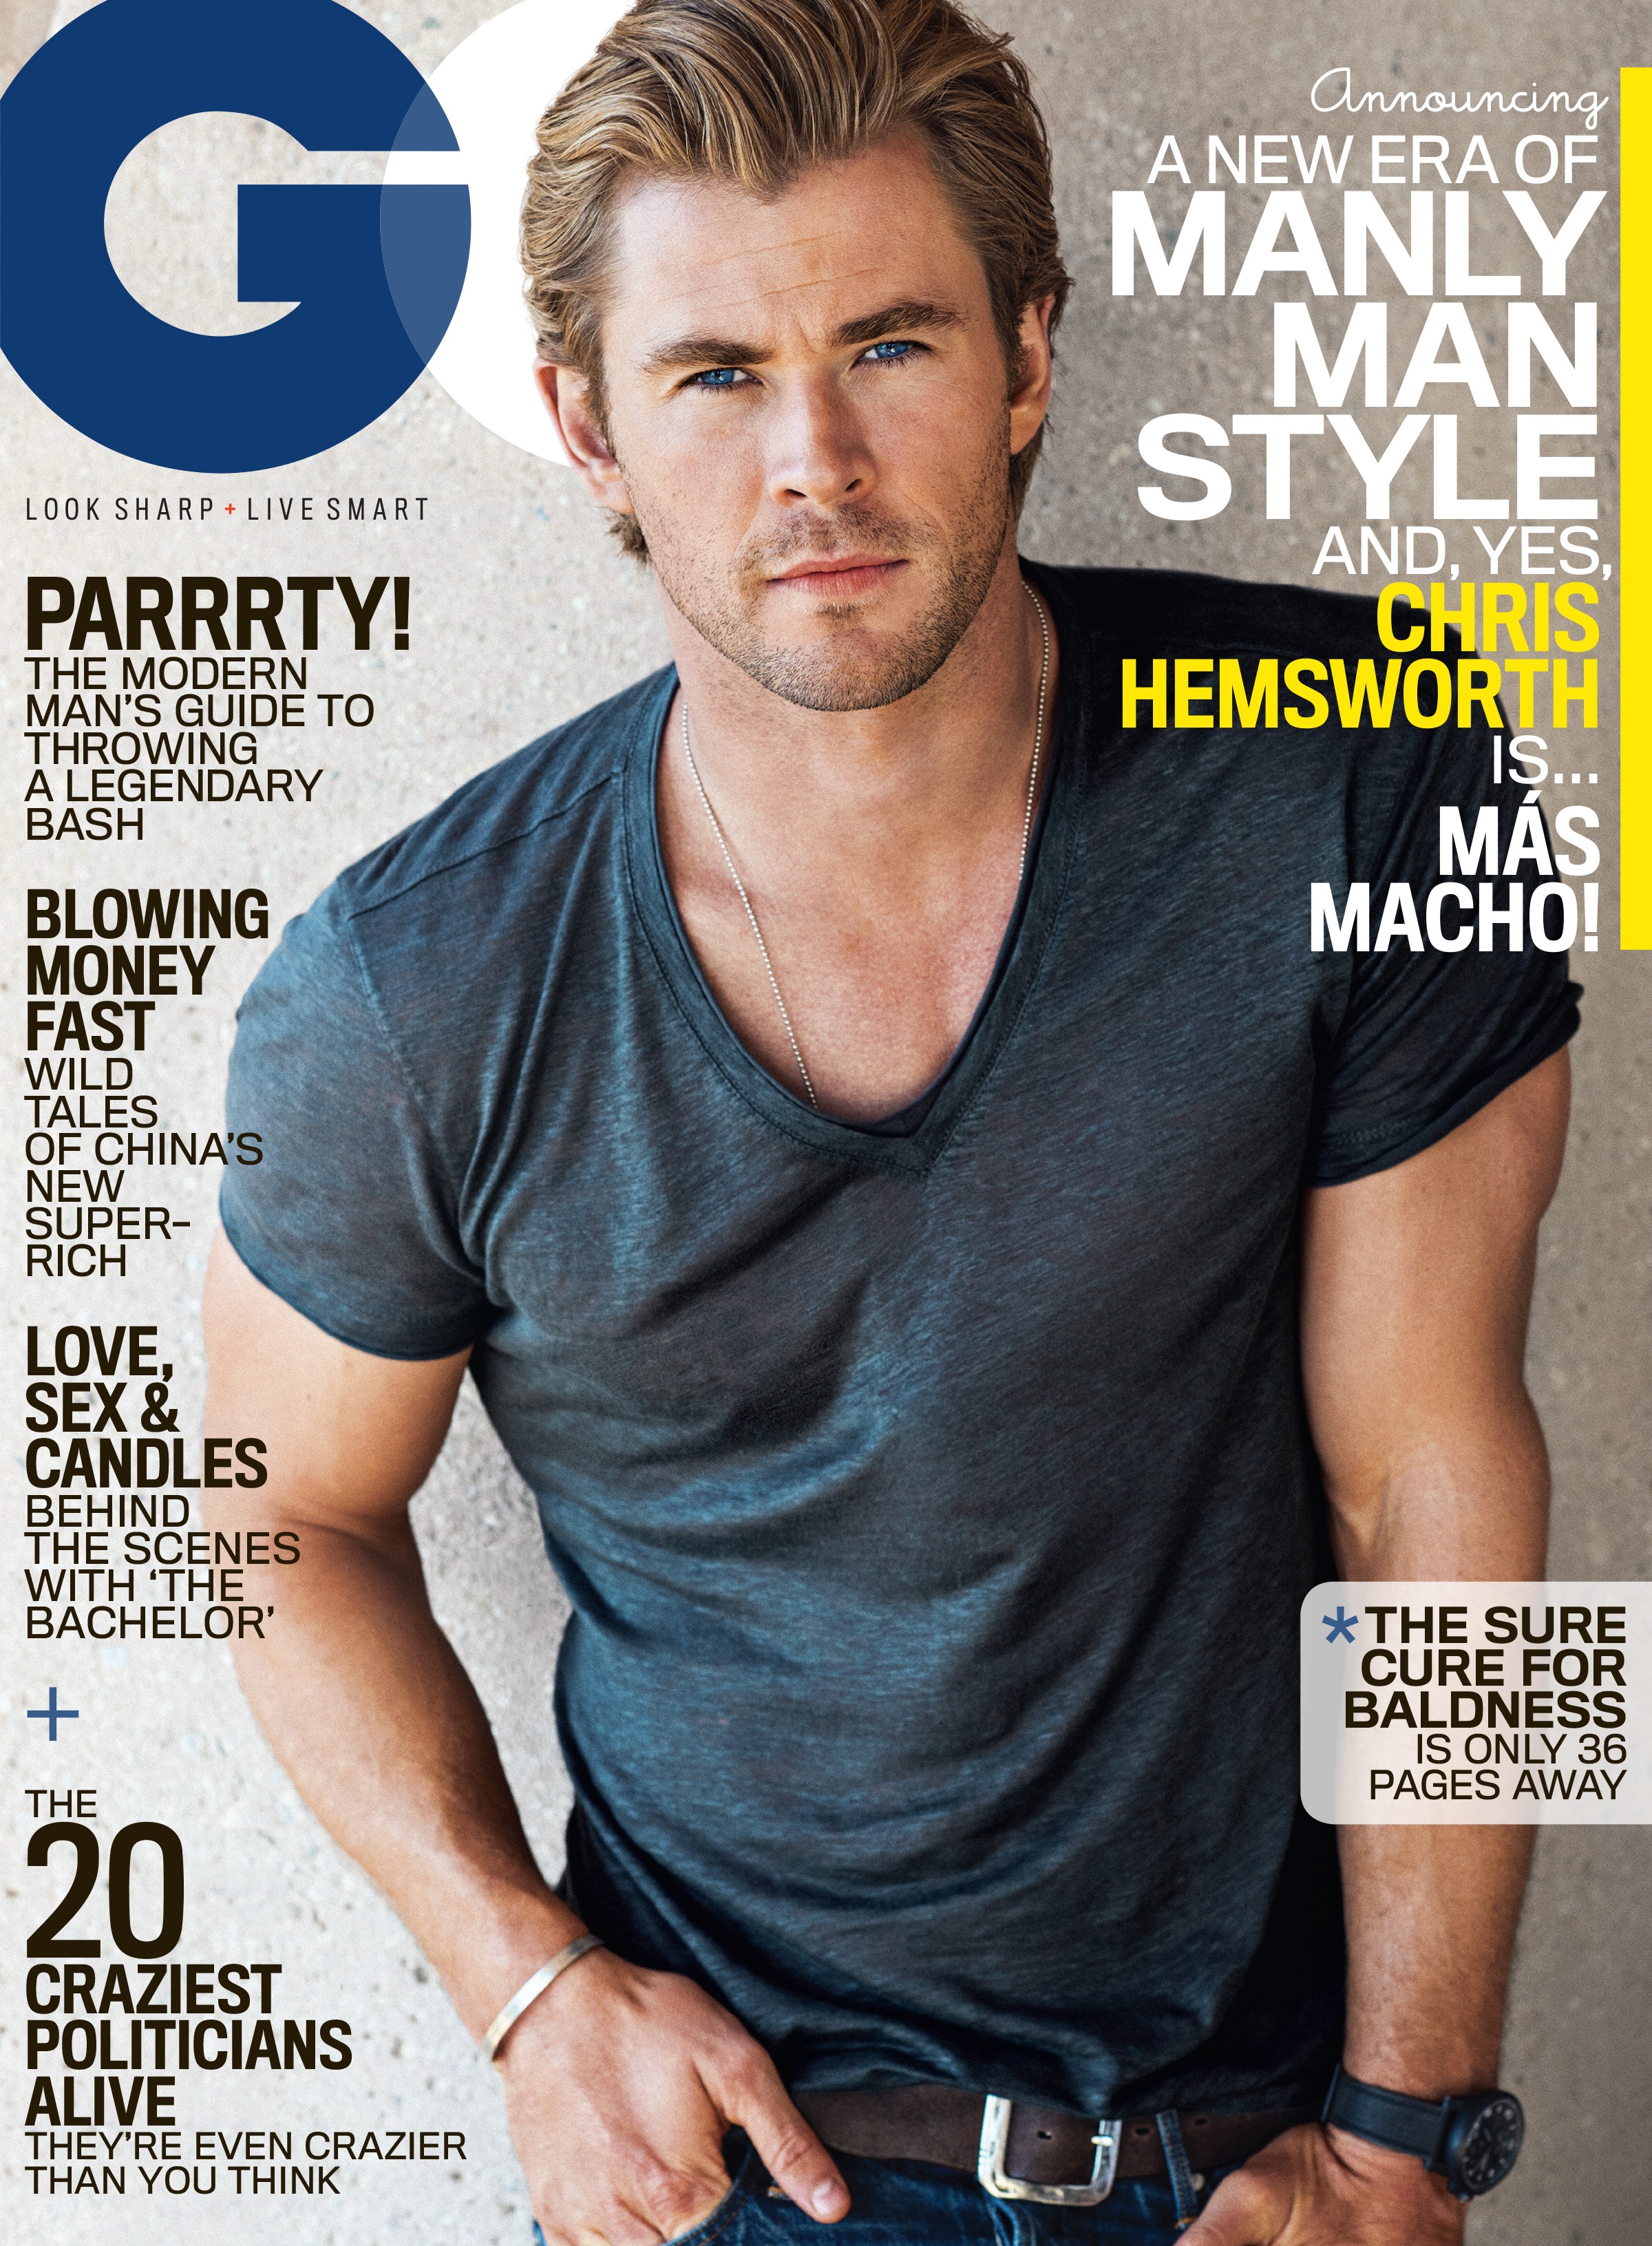 Chris Hemsworth admits he had 'no empathy' for Liam's mistakes